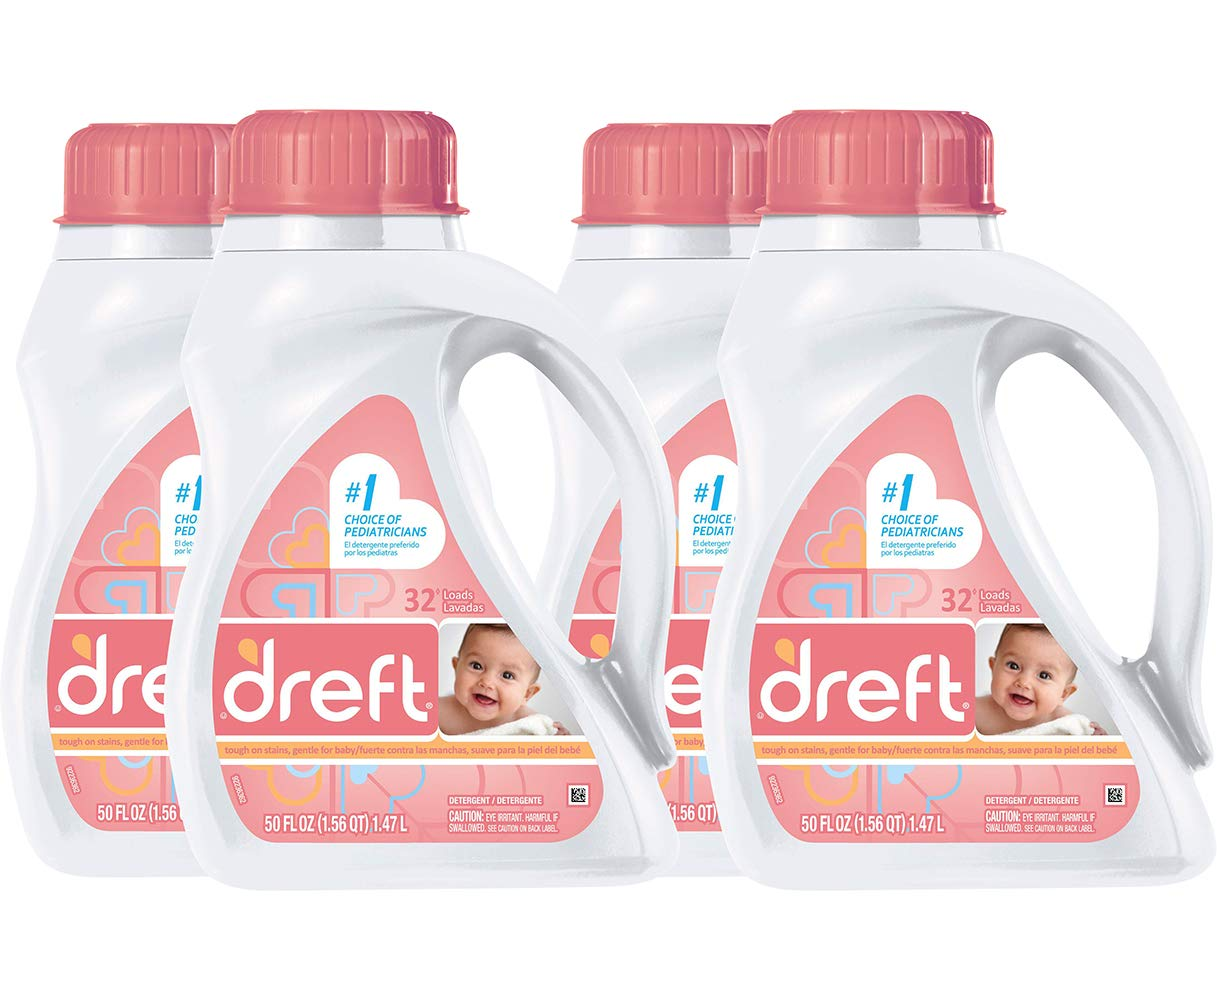 Dreft Stage 1: Newborn Hypoallergenic Liquid Baby Laundry Detergent (HE), Natural for Baby, Newborn, or Infant, 50 Ounce (32 Loads), (4 Count)